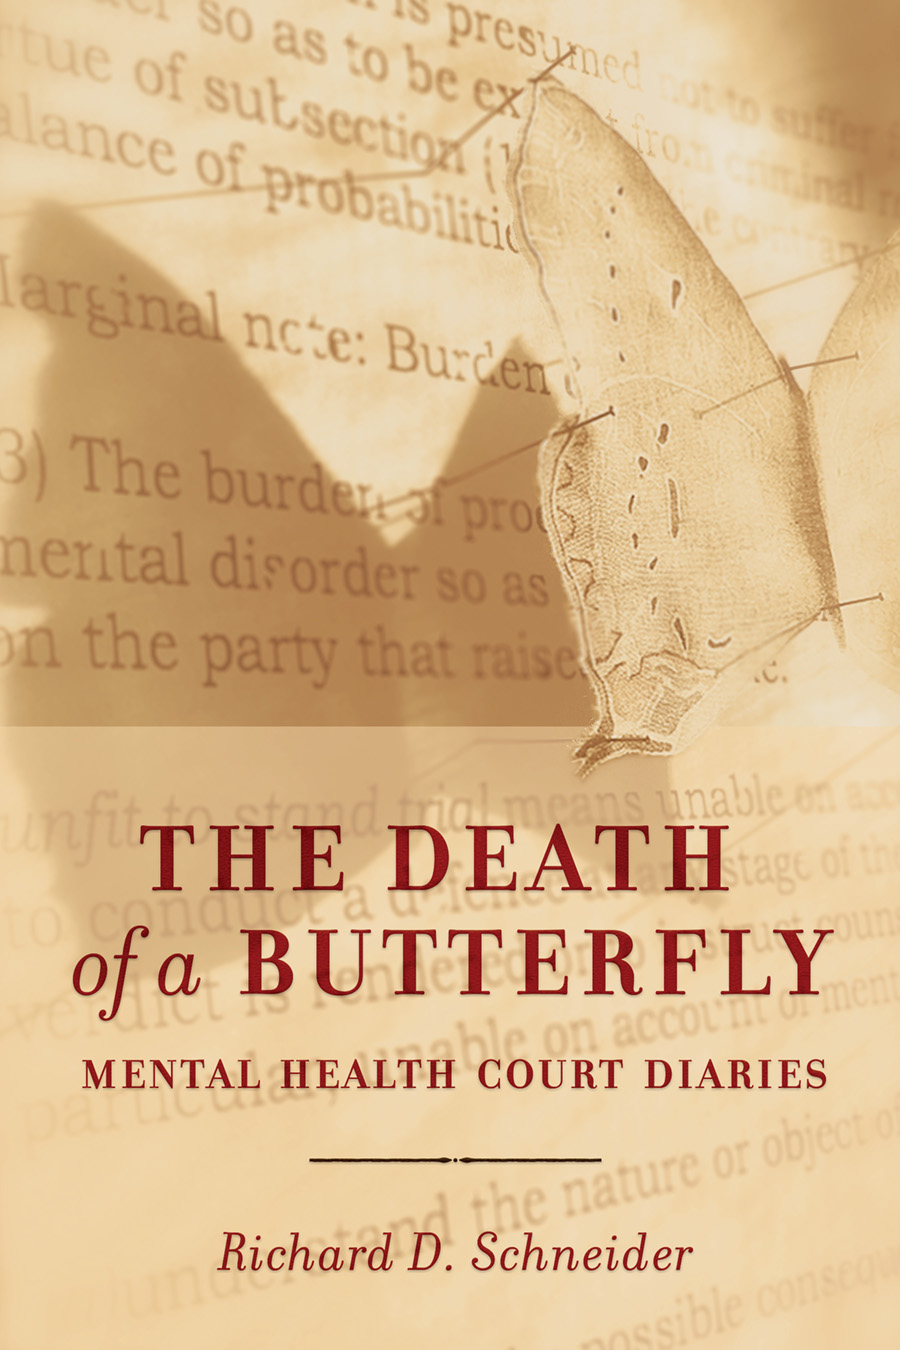 Cover image for Death of a Butterfly by Richard D. Schneider. Cover shows a paper butterfly pinned to a legal document in sepia tones.